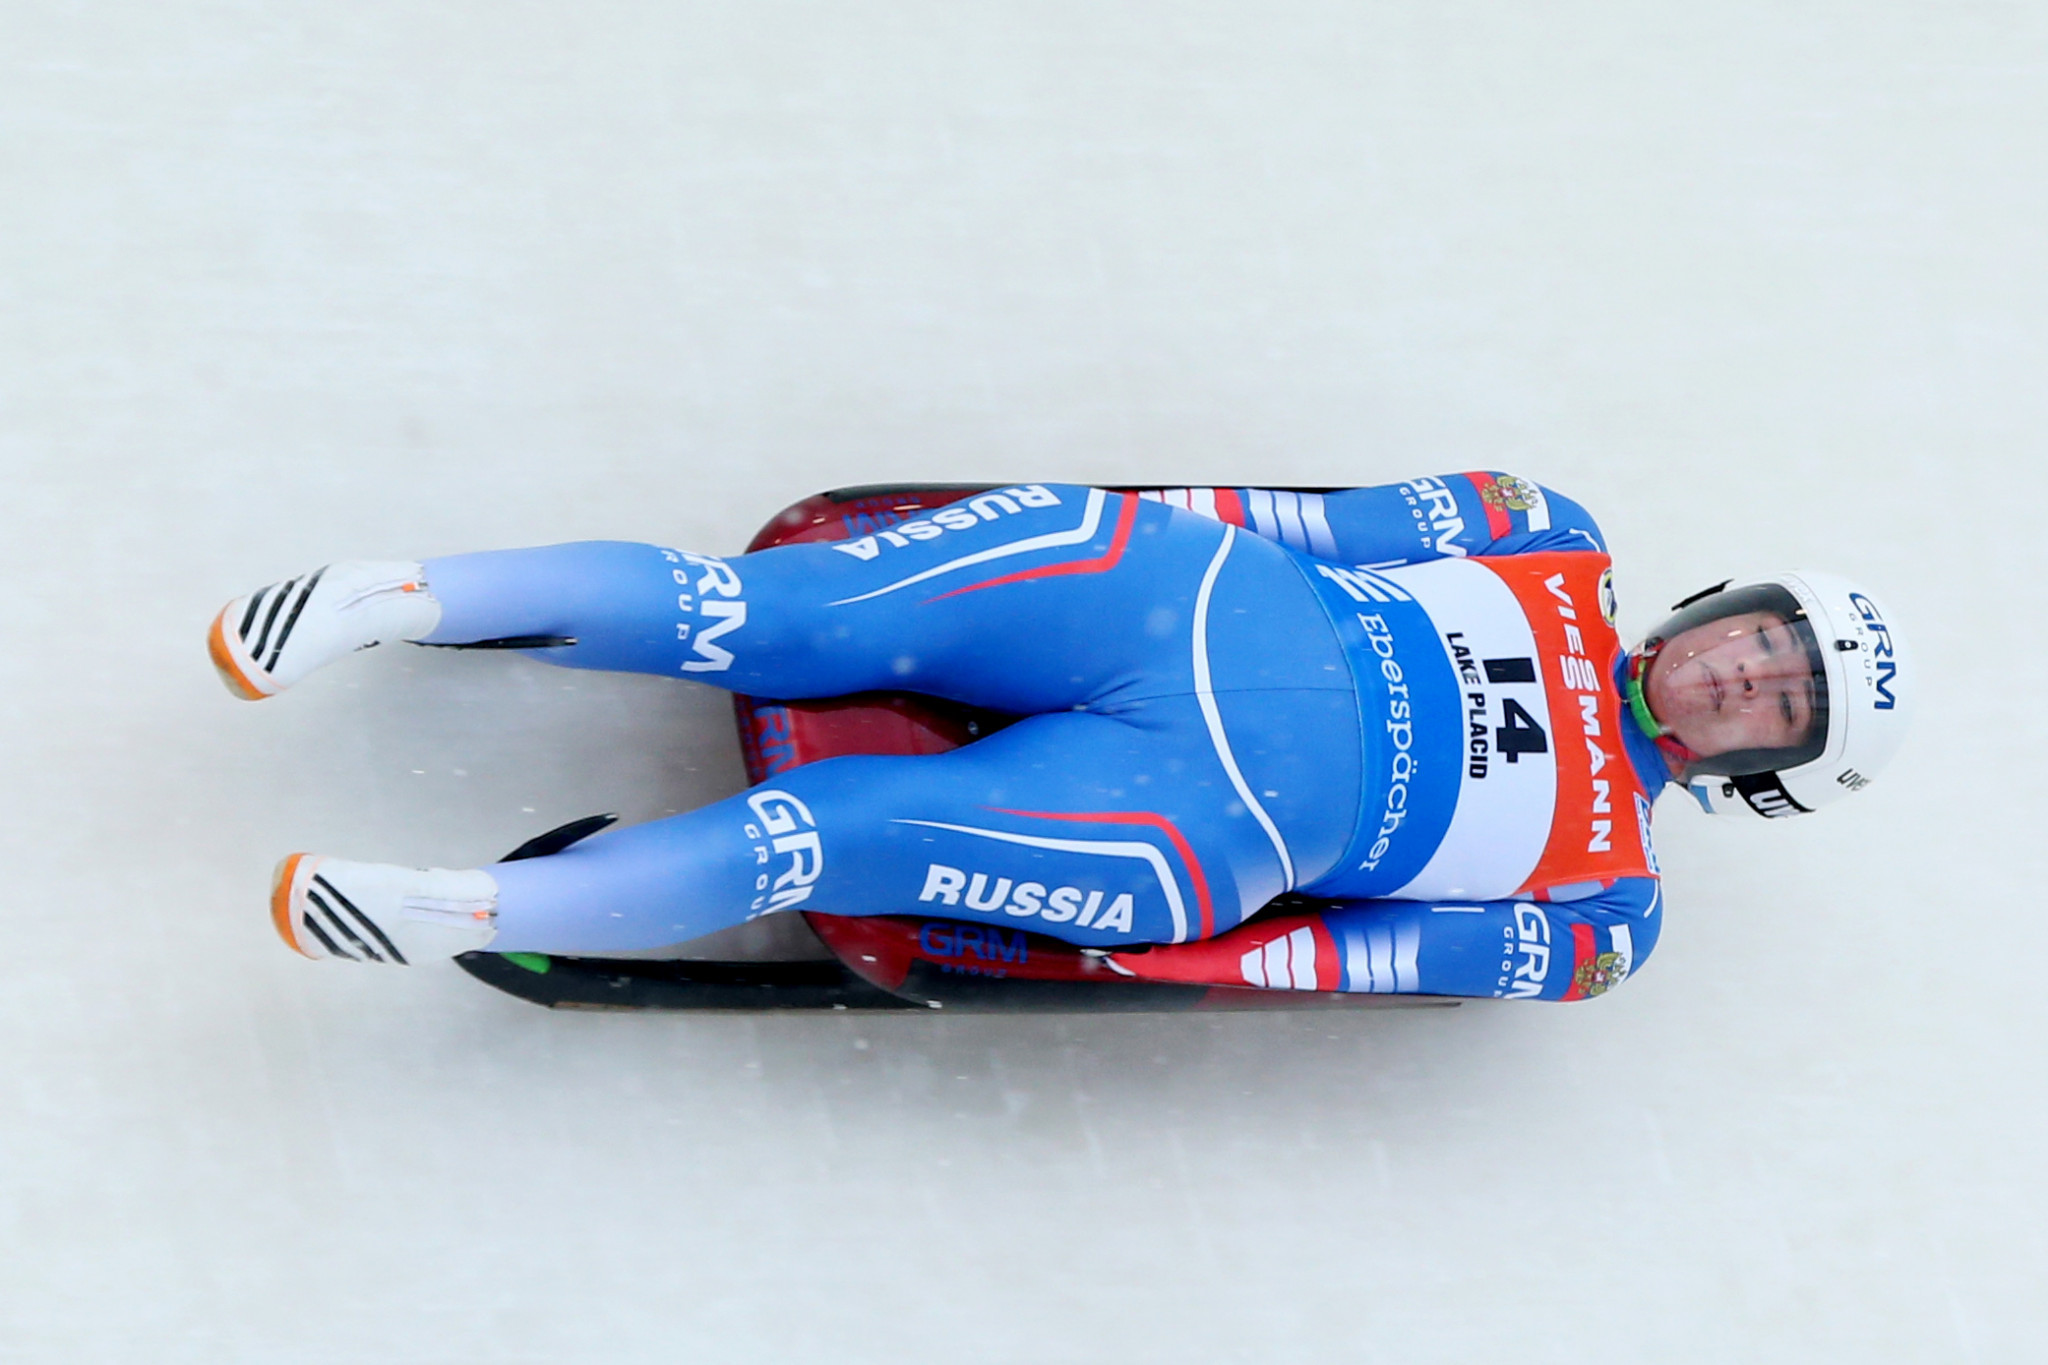 Ivanova and Taubitz to continue FIL World Cup duel in Oberhof